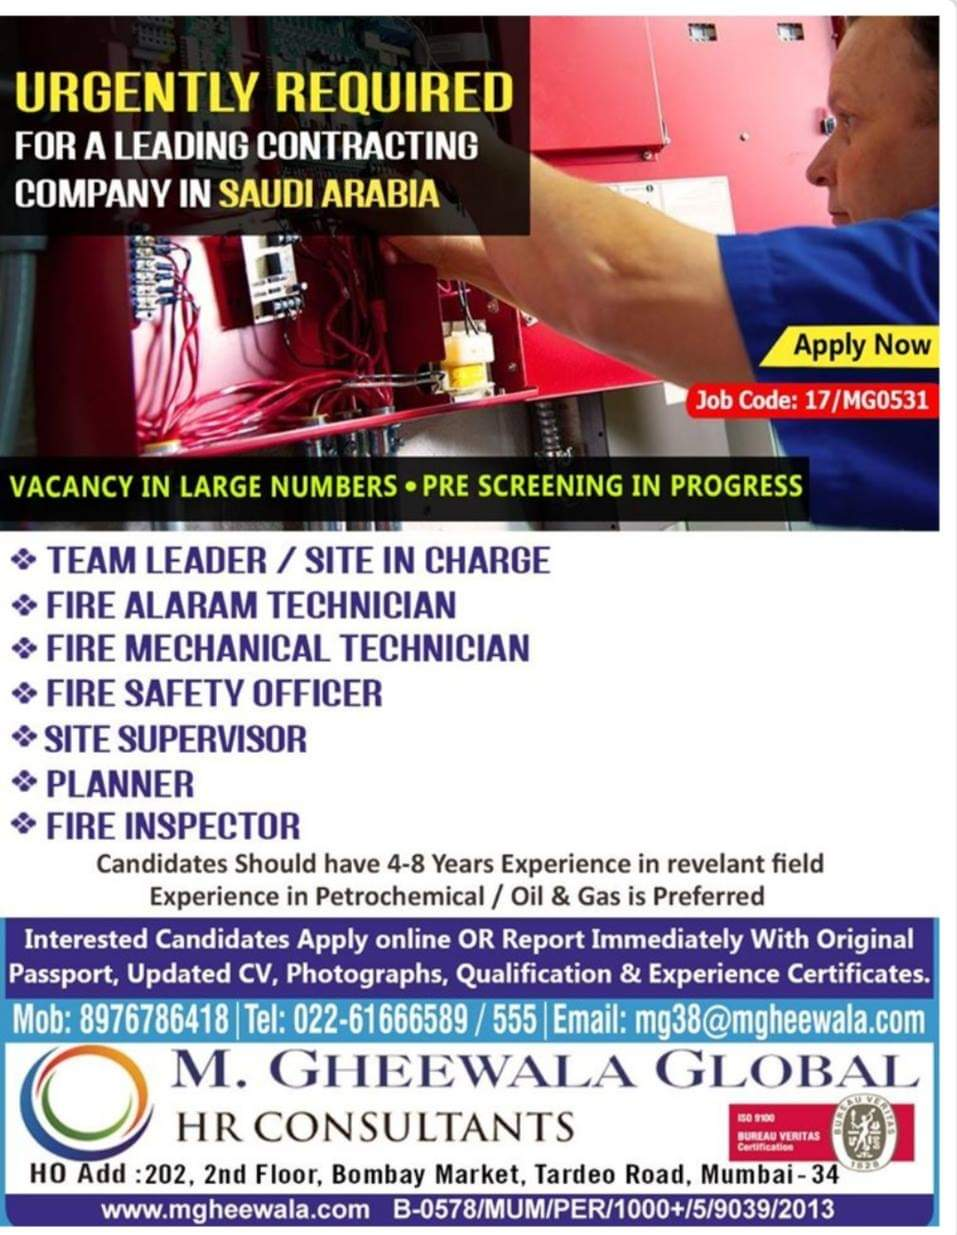 JOB OPPORTUNITIES IN A LEADING CONTRACTING COMPANY IN SAUDI ARABIA